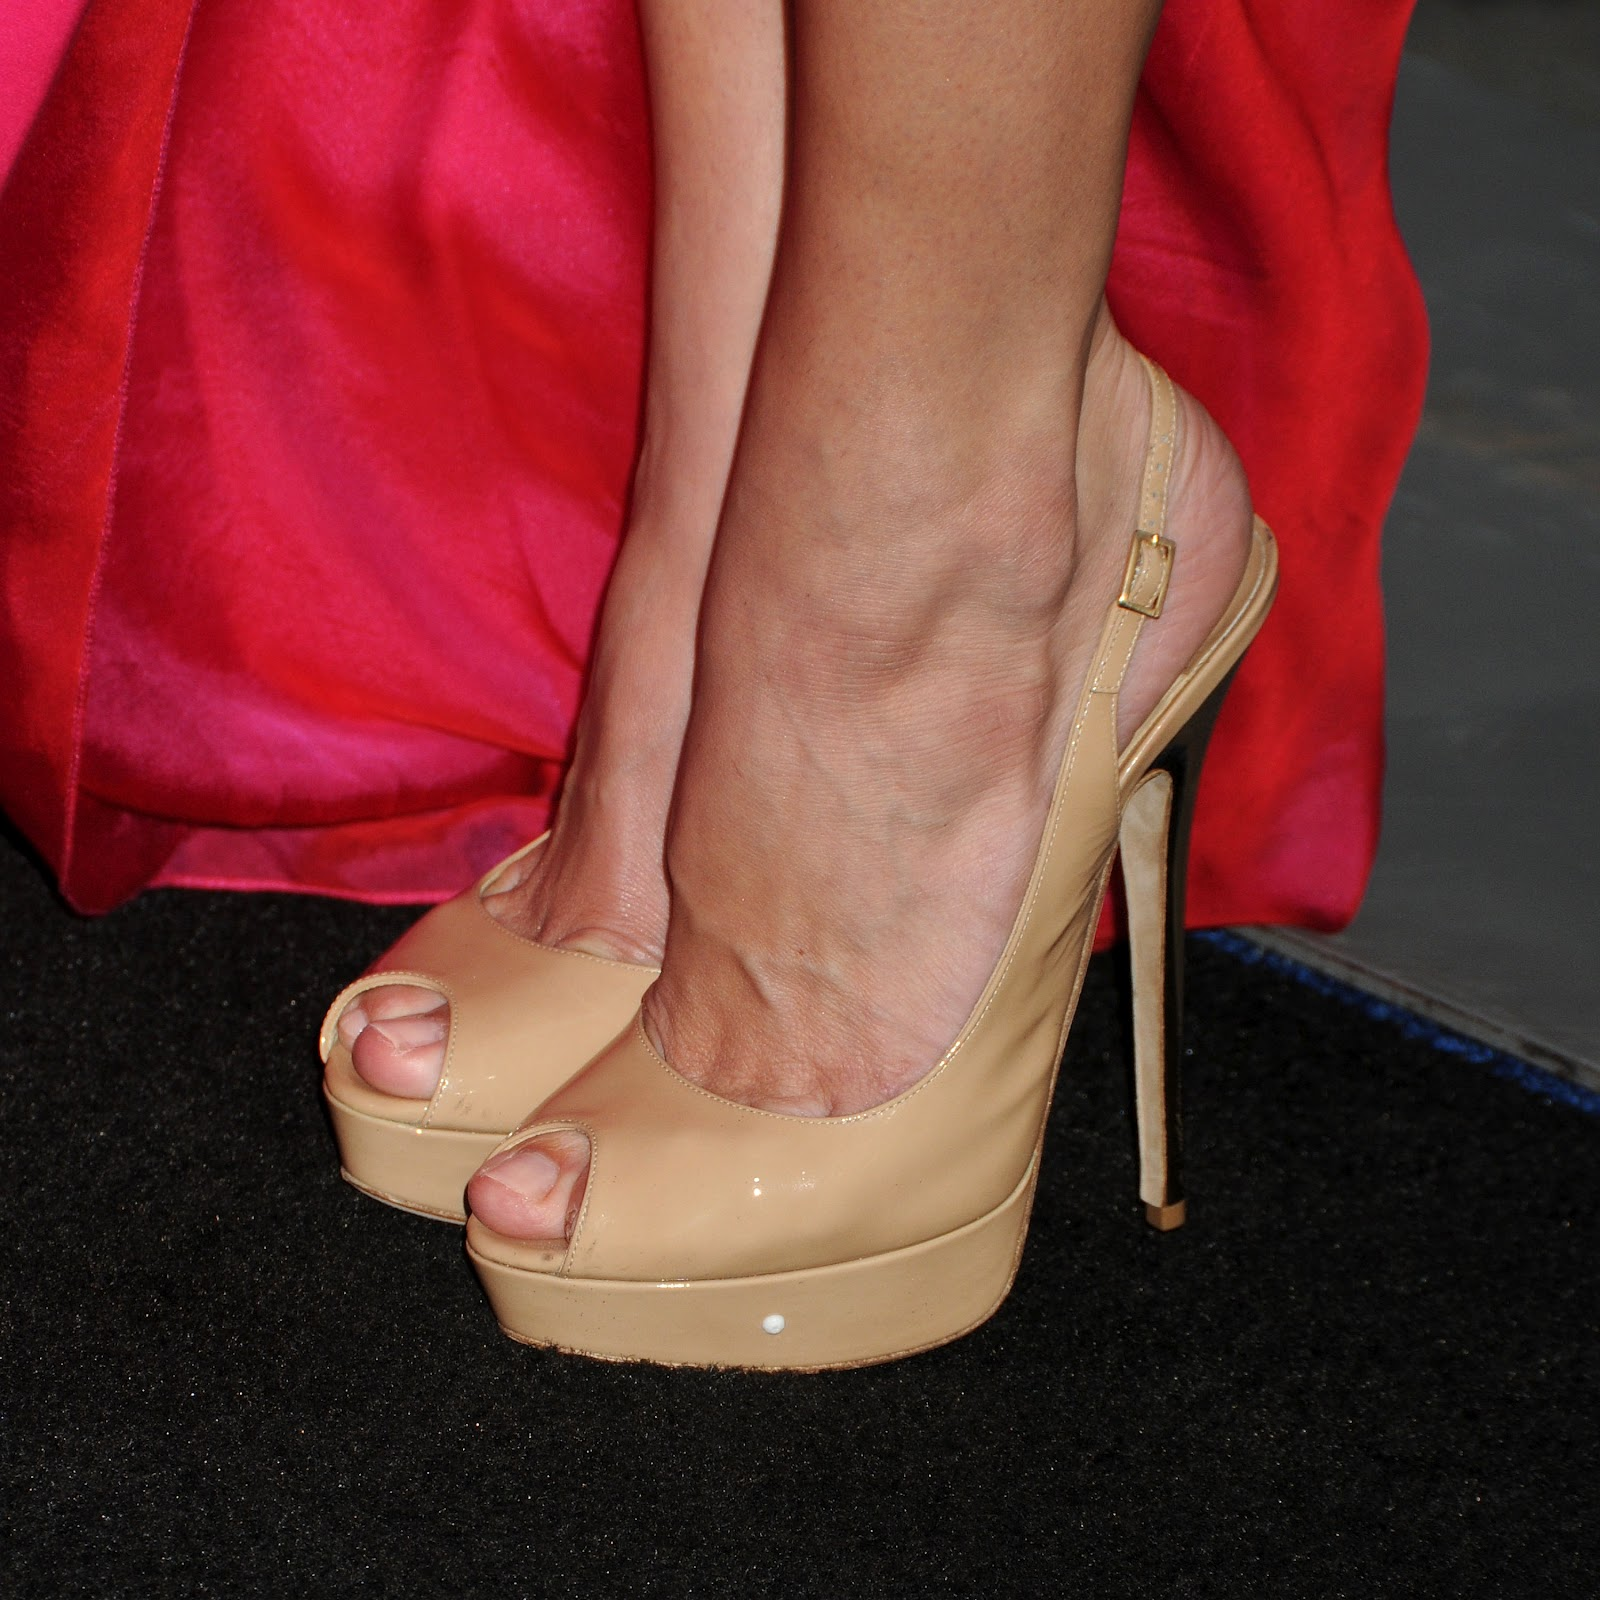 http://1.bp.blogspot.com/-dTv9EmGimnQ/UG2UFMqf4WI/AAAAAAAAFII/gQu9GLO1-z0/s1600/Ashley-Greene-Feet-778847.jpg